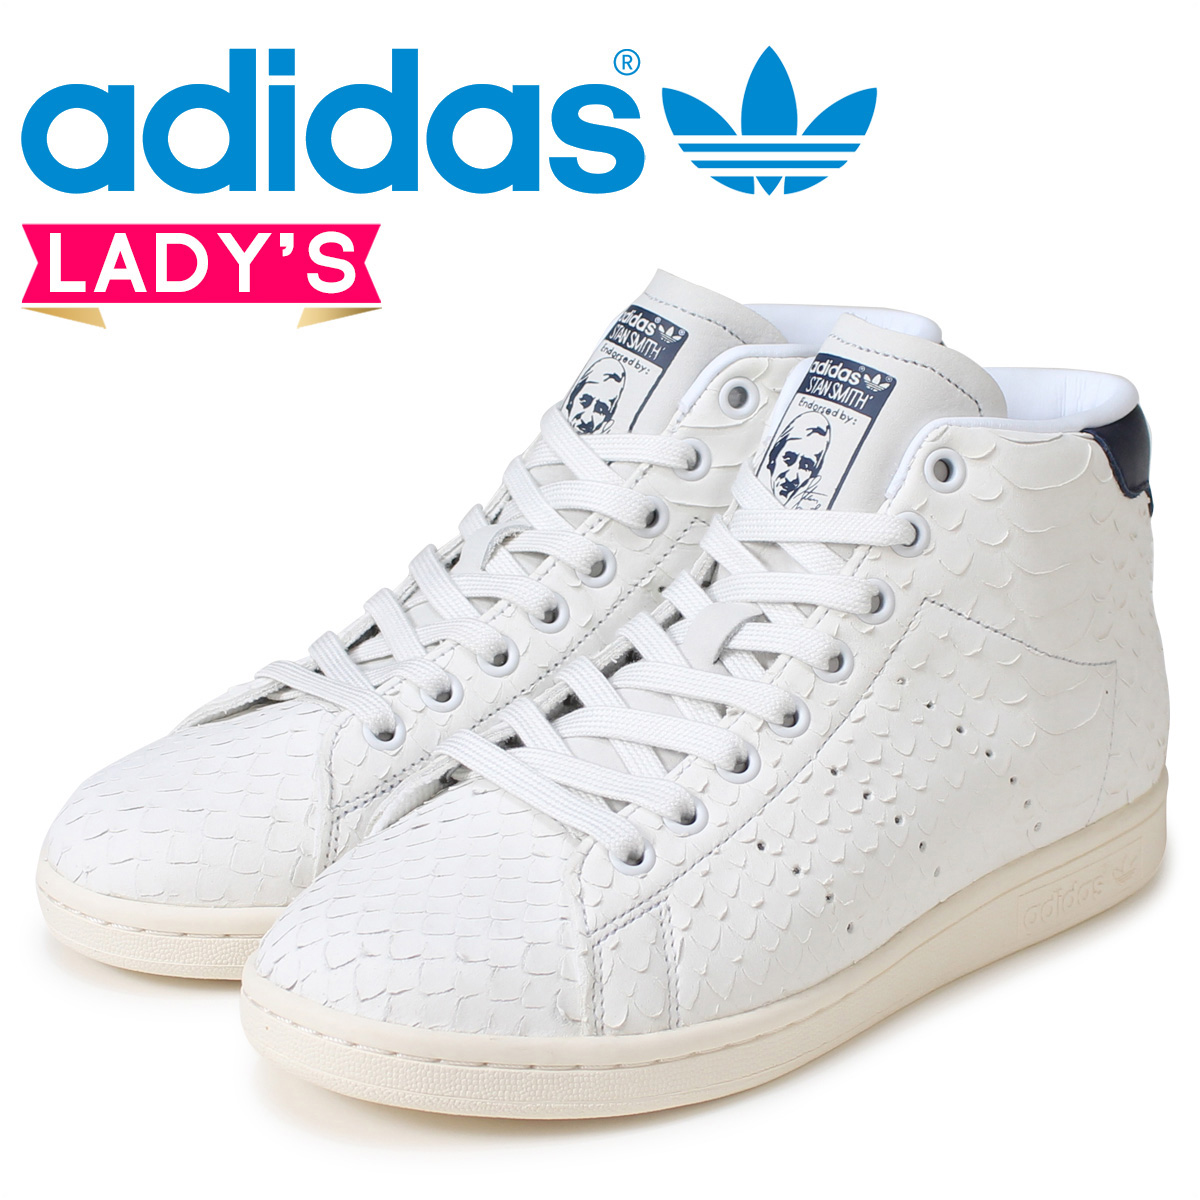 Sugar ShopAdidas Online Stan Sneakers Smith Womens zVjUpqMLSG